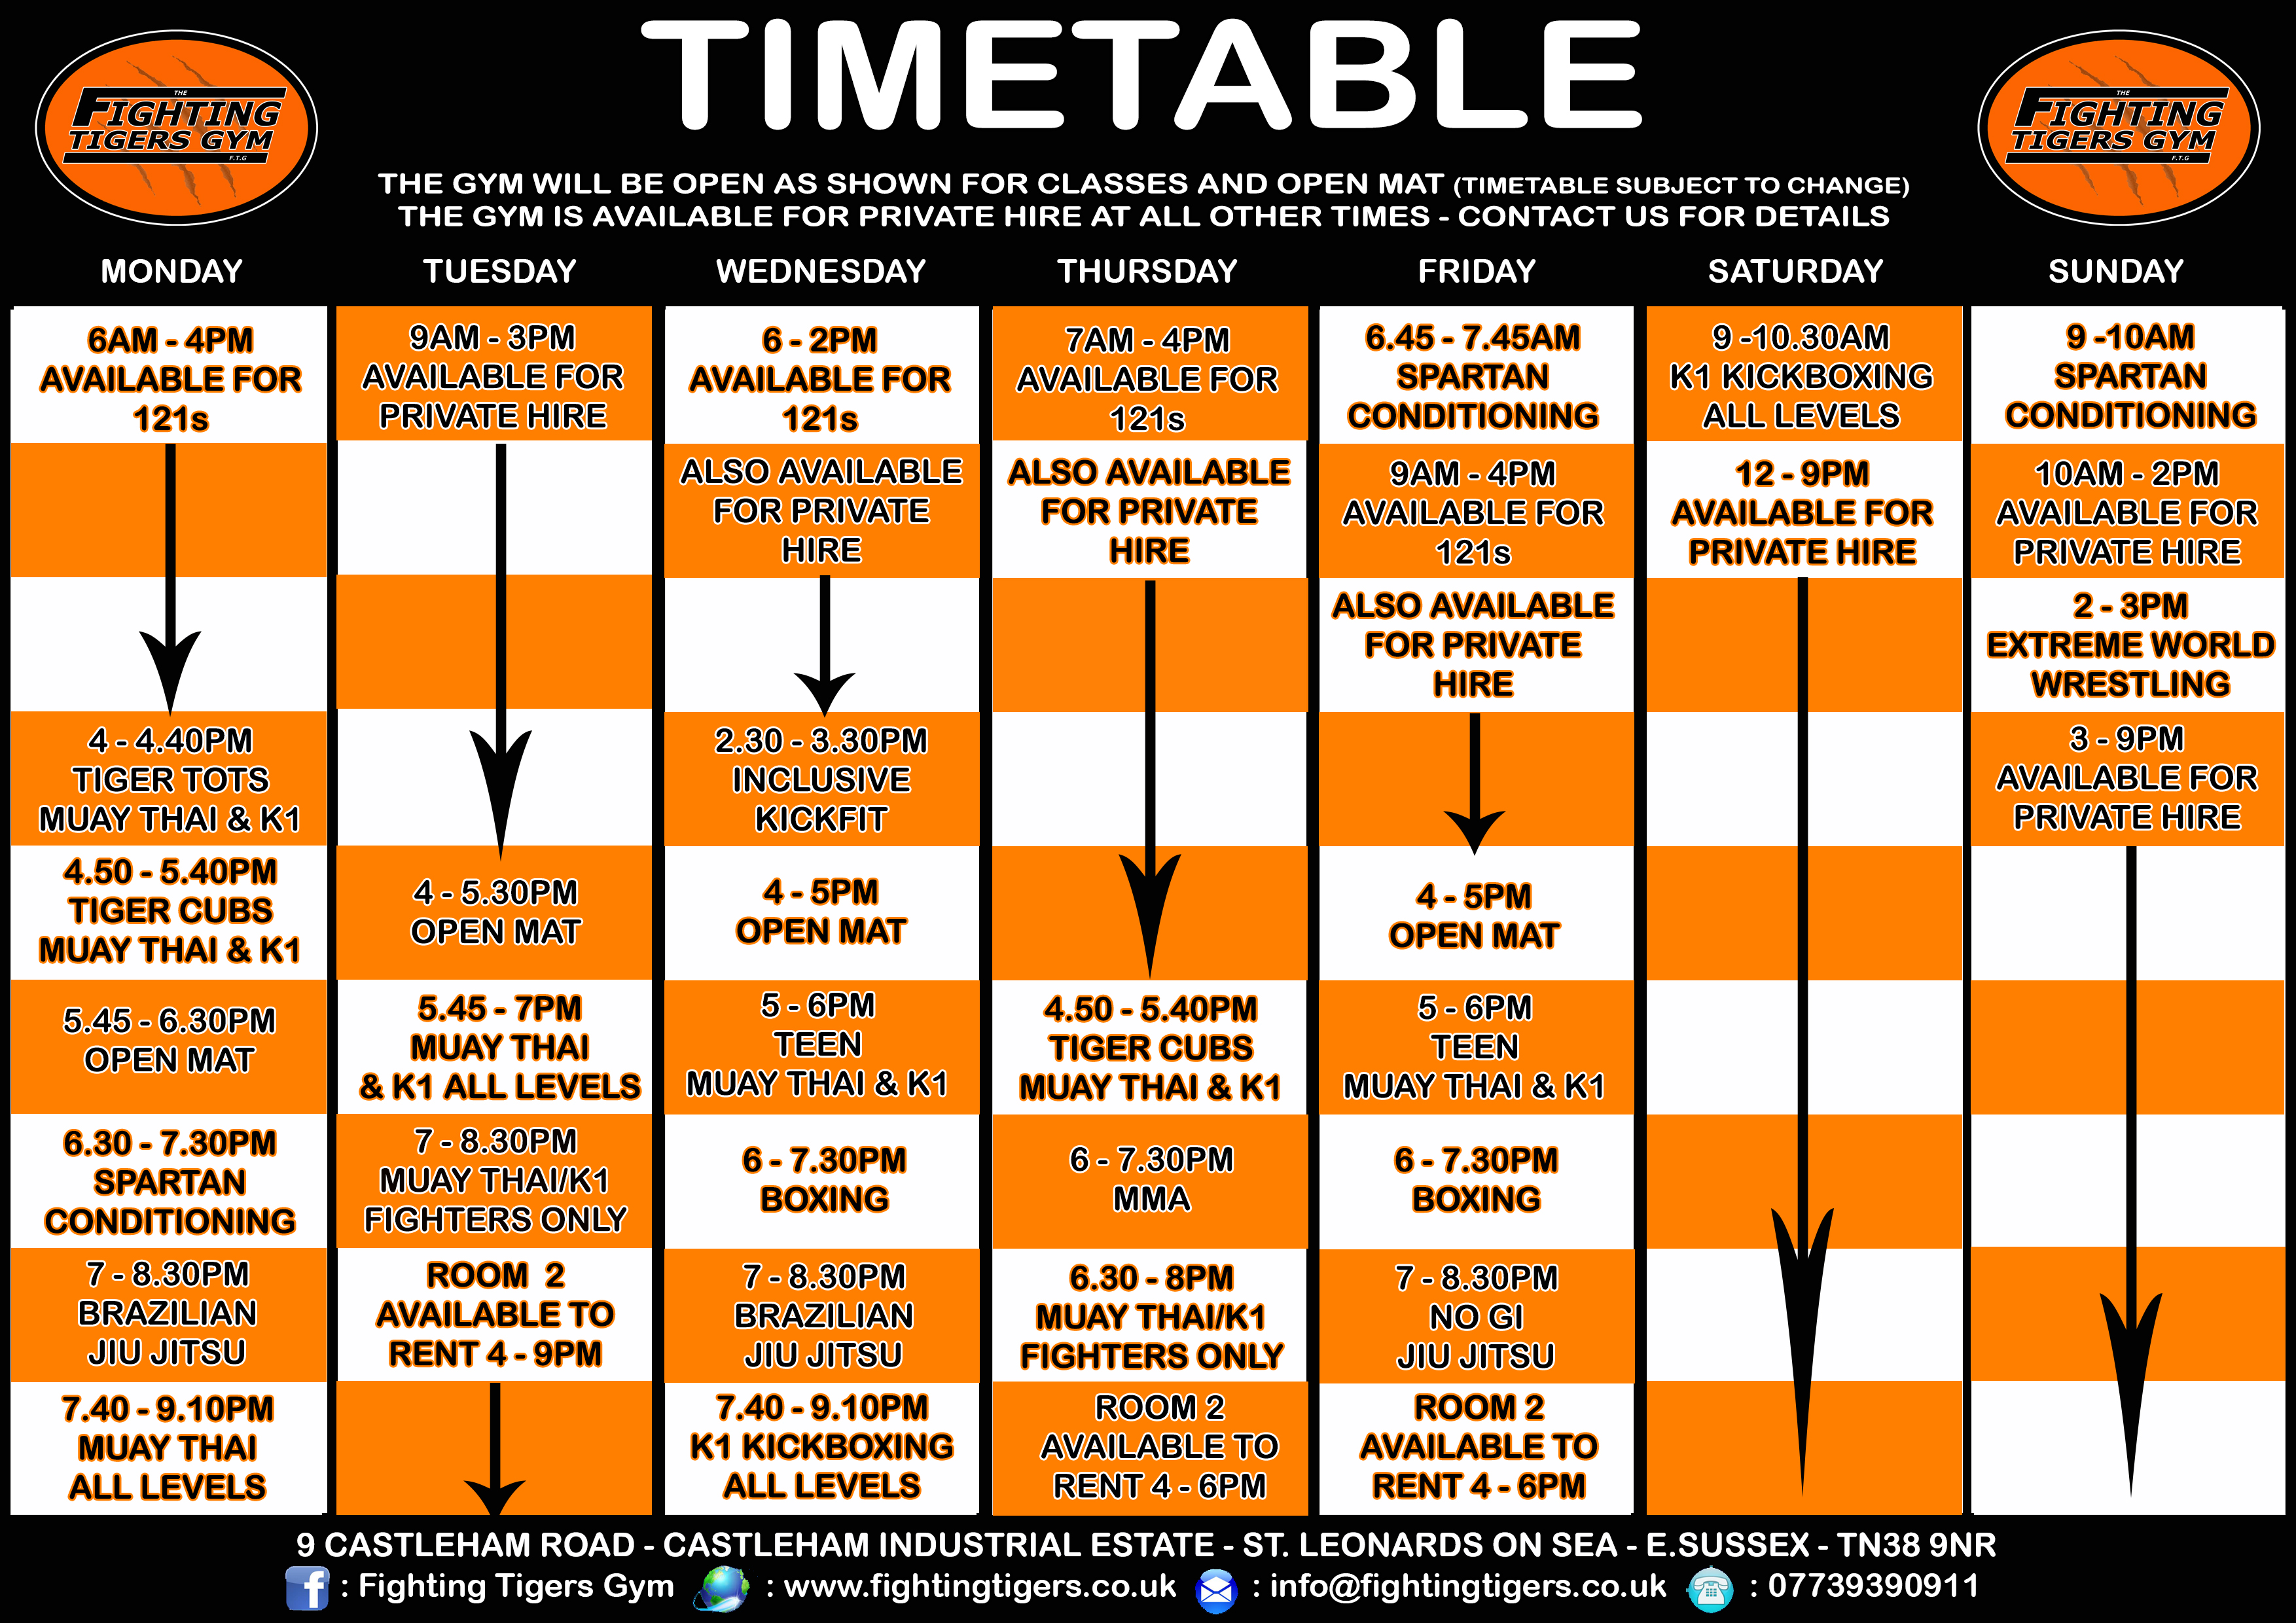 TIMETABLE 2018